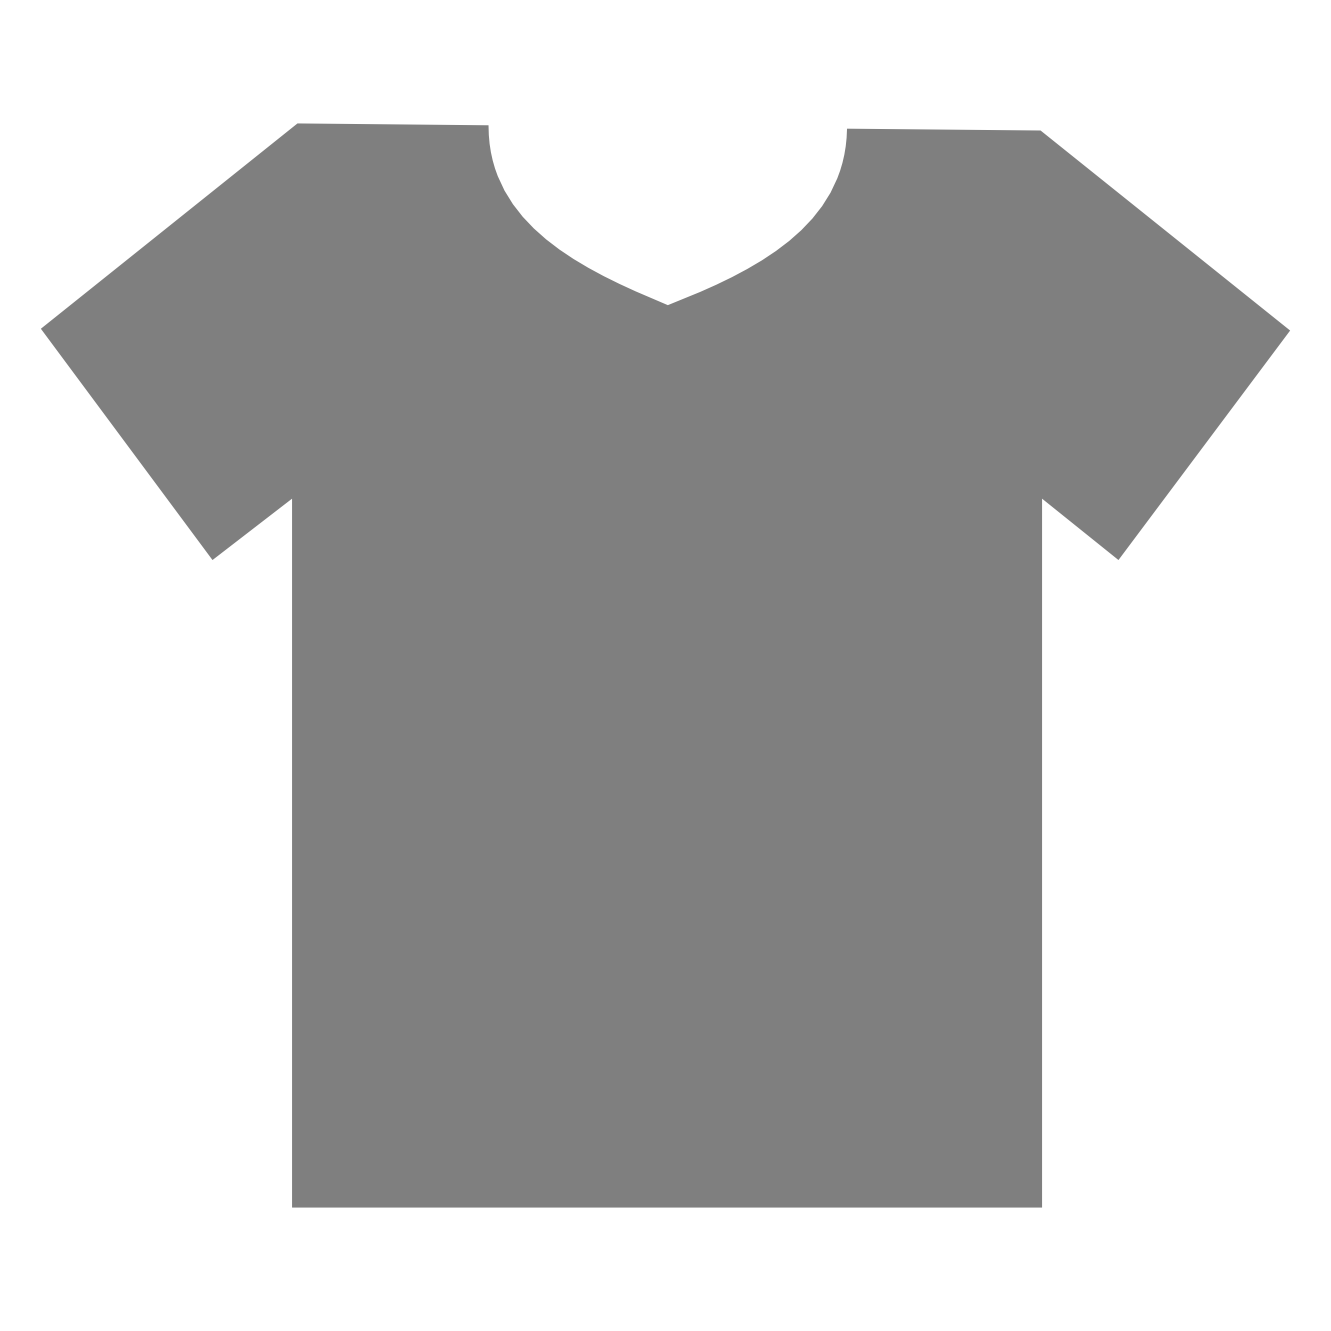 t shirt shape clipart - photo #10